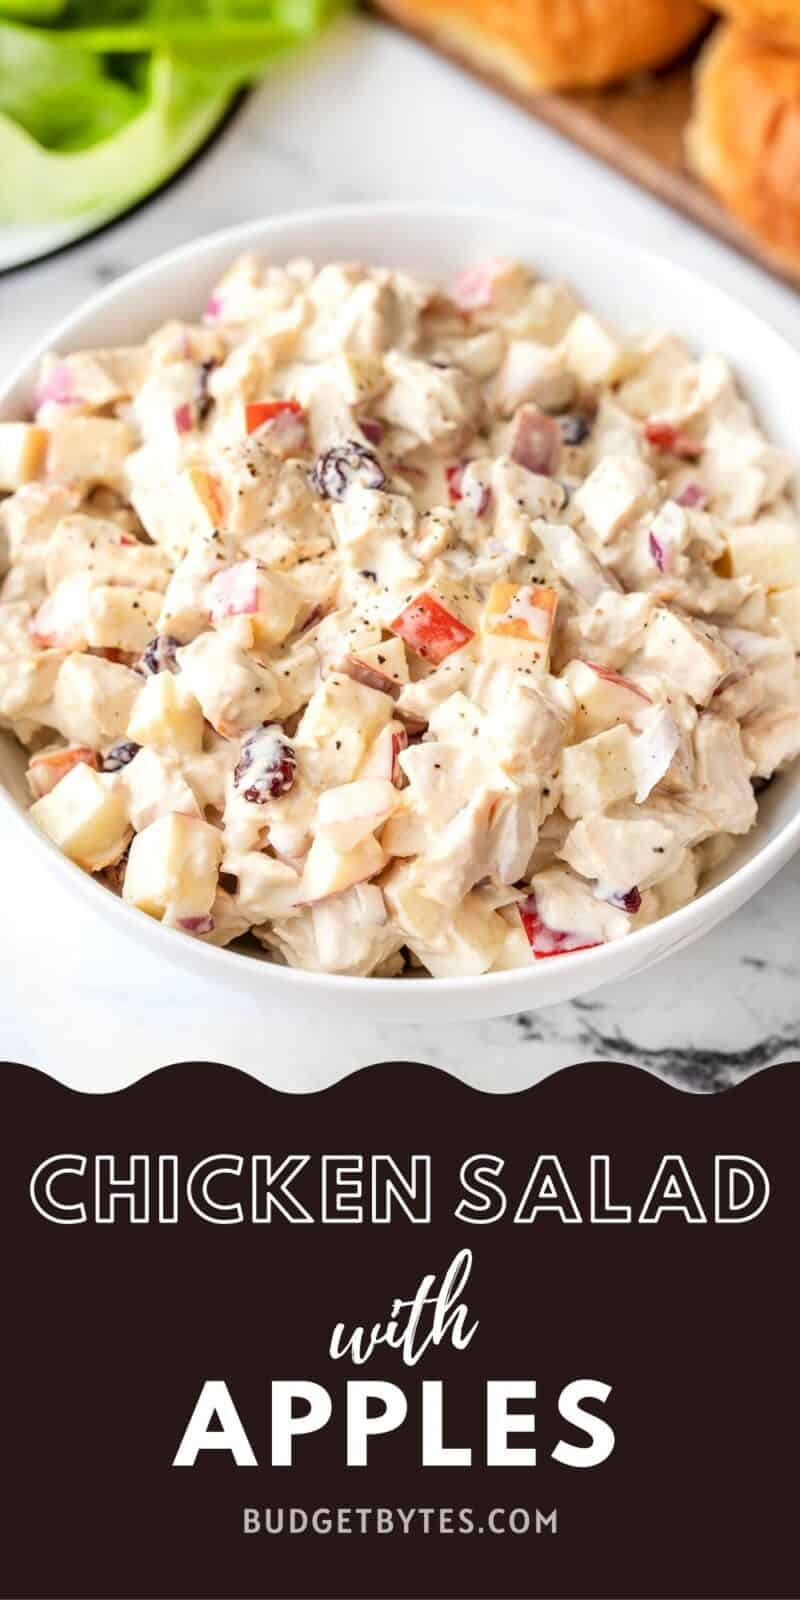 A bowl of chicken salad with apples, title text at the bottom